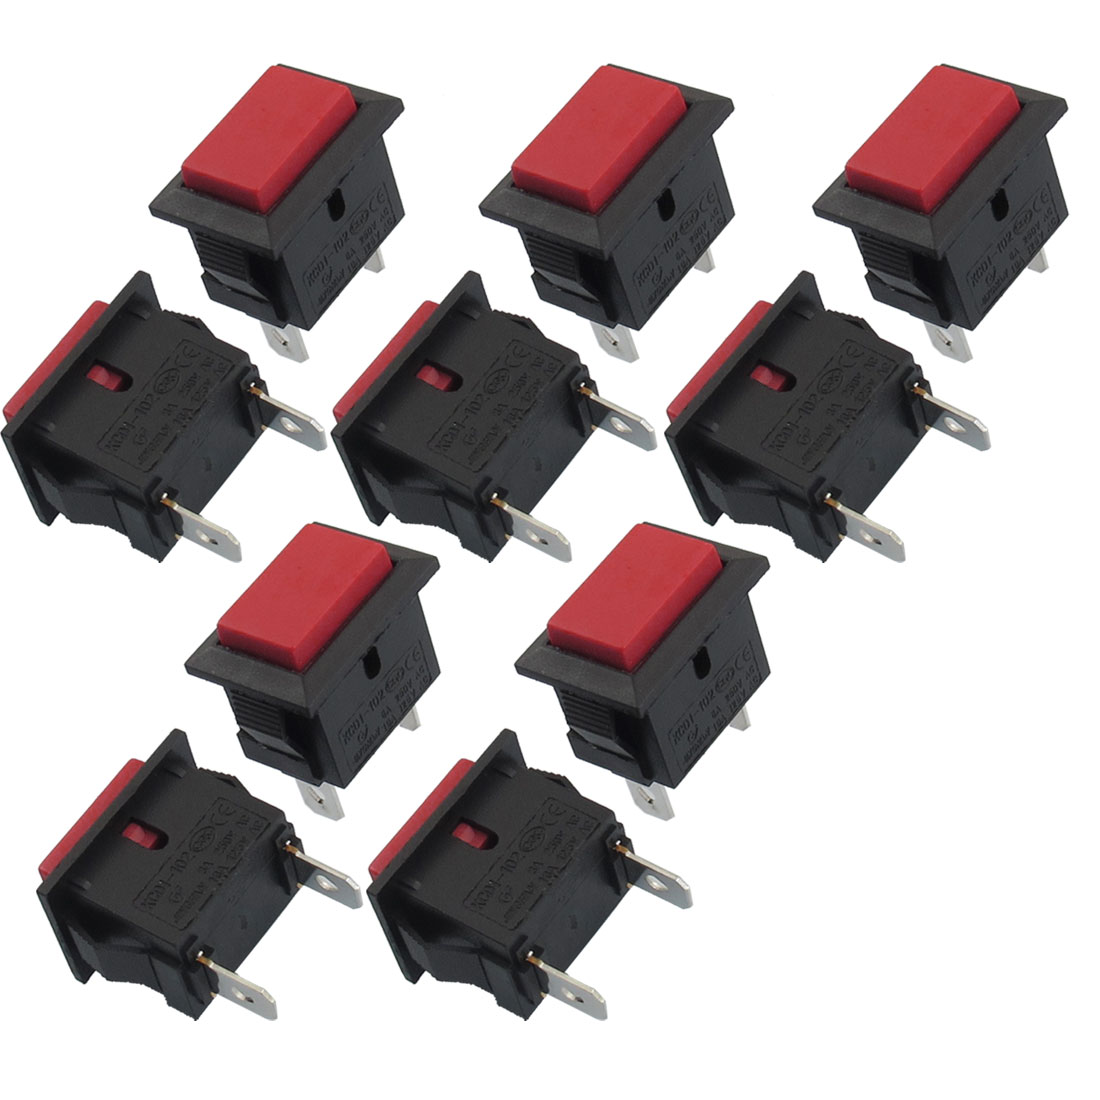 10 Pcs SPST Red Button Momentary Off Rocker Switch AC 250V/6A 125V/10A